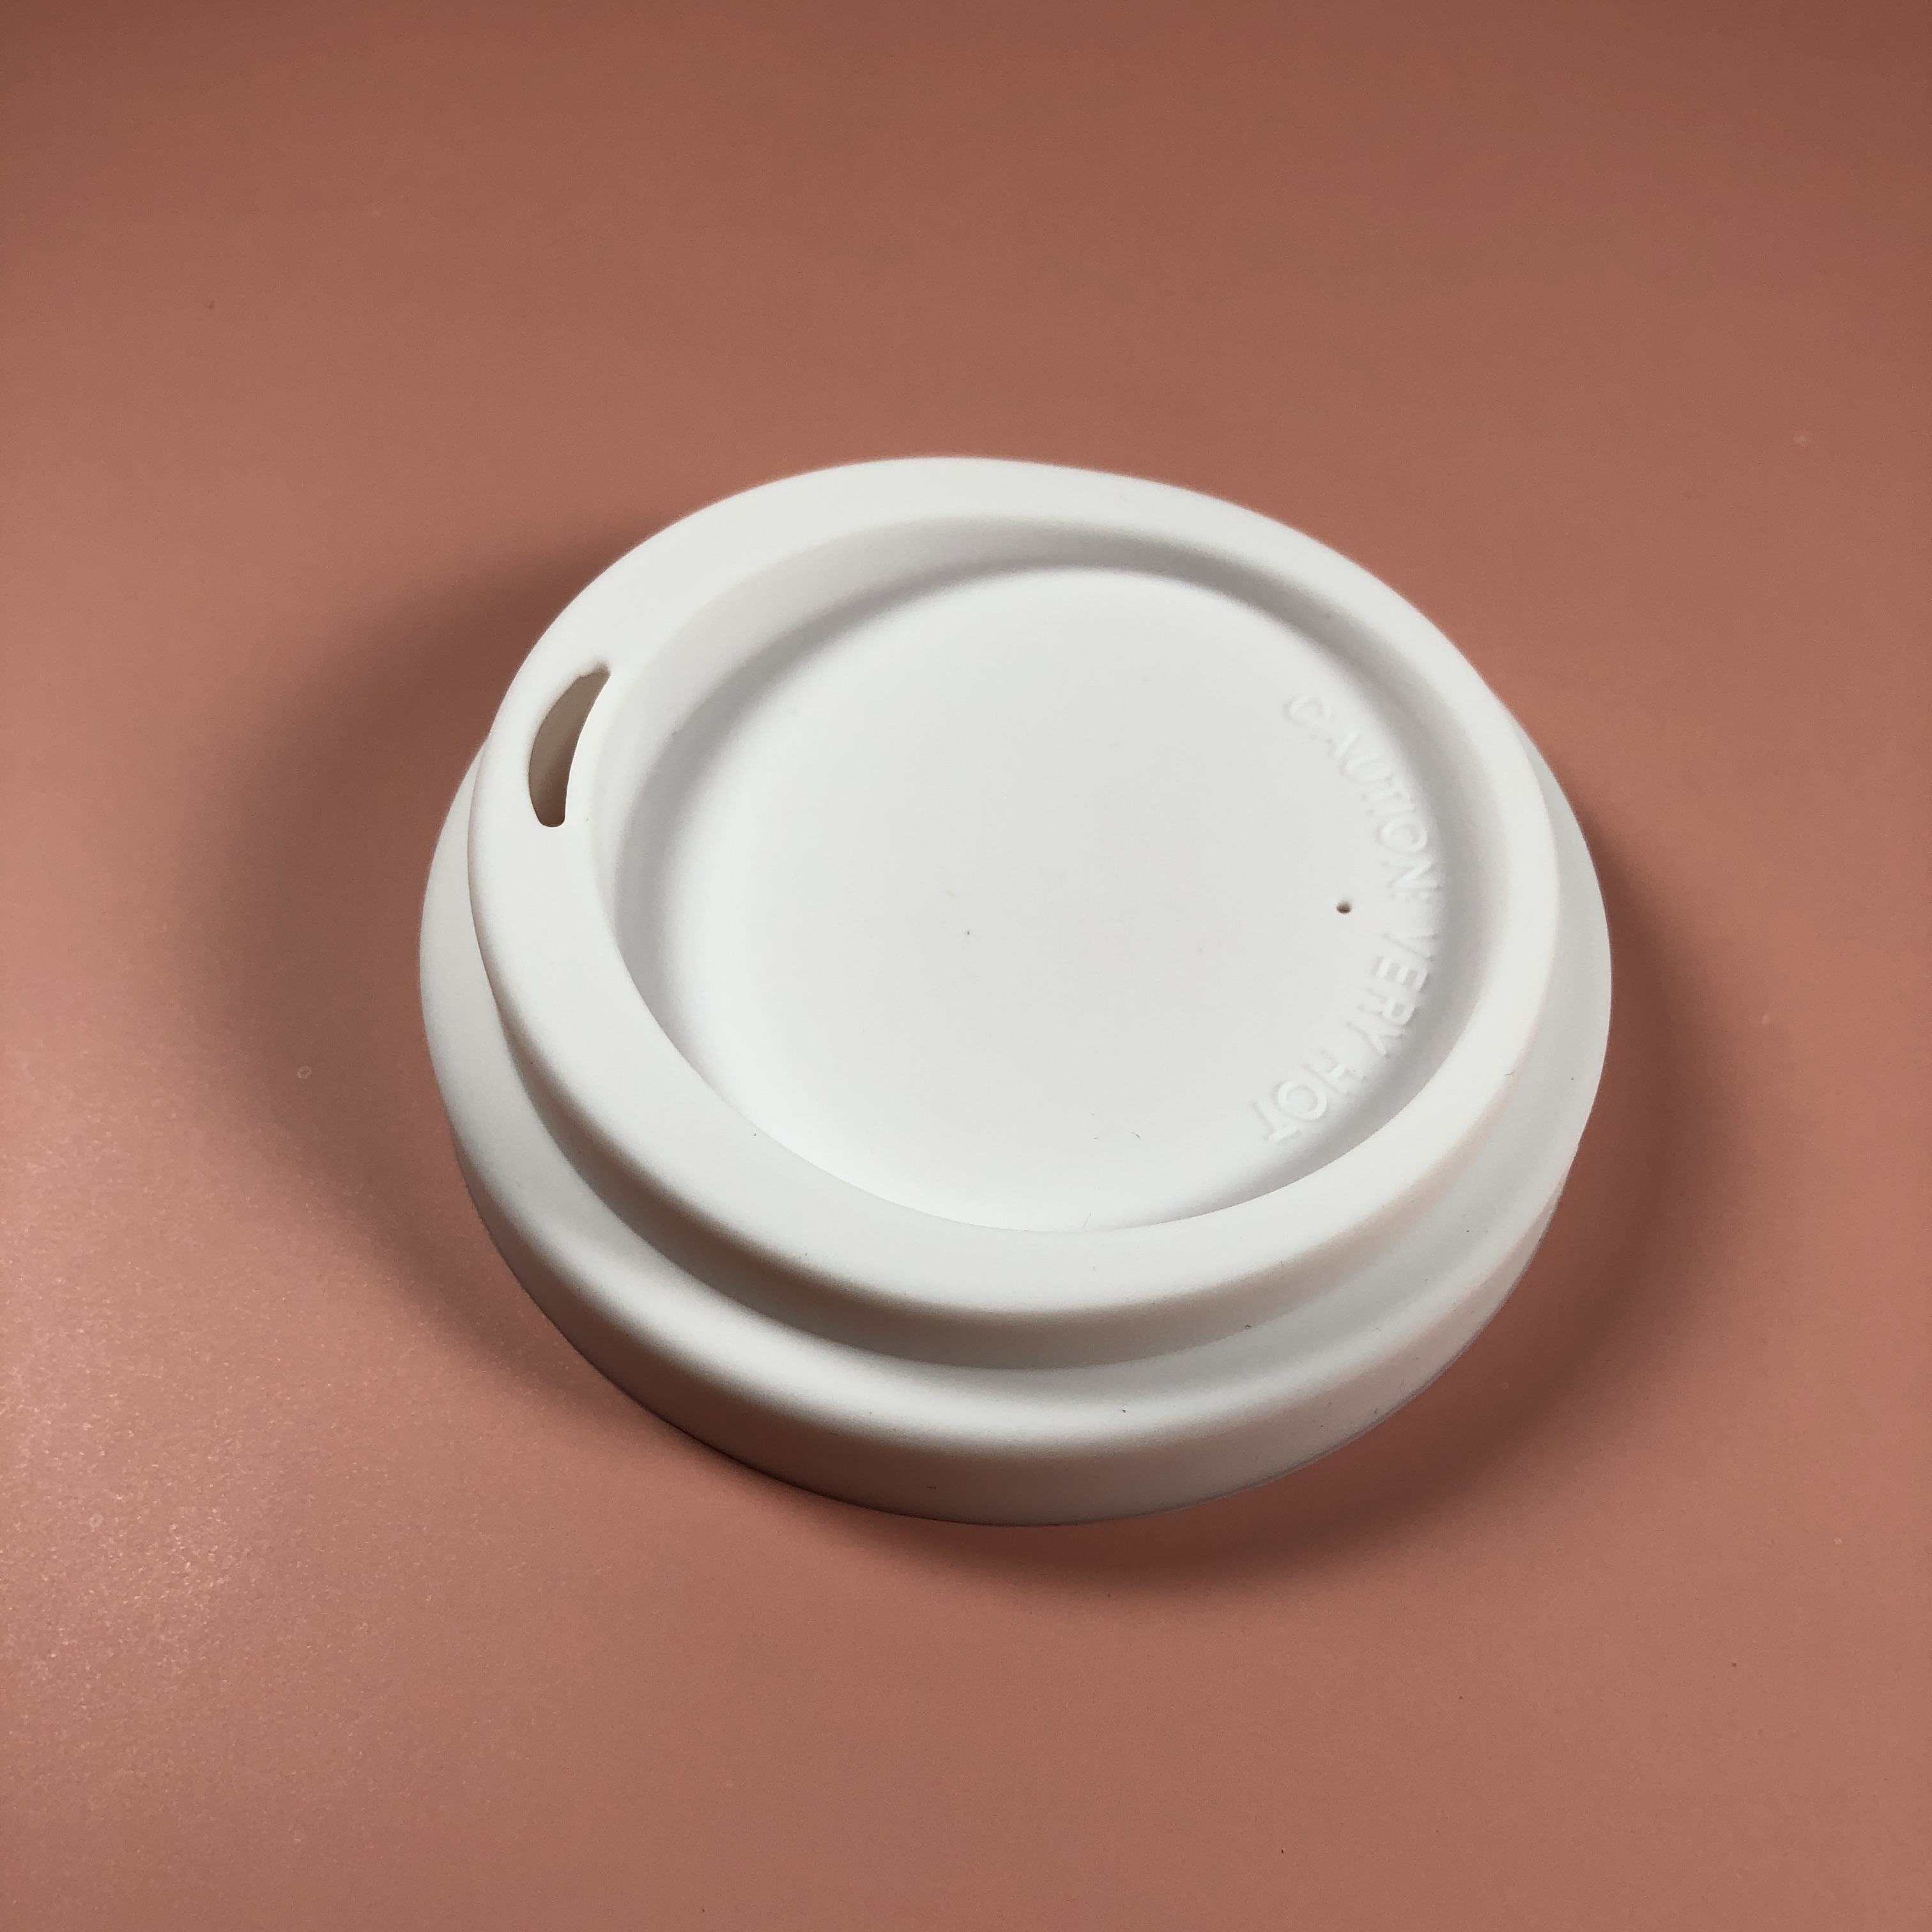 Hottest Silicone Cup Cover In Australia White 9cm OEM Moon Shape Silicone Cup Lid Cover